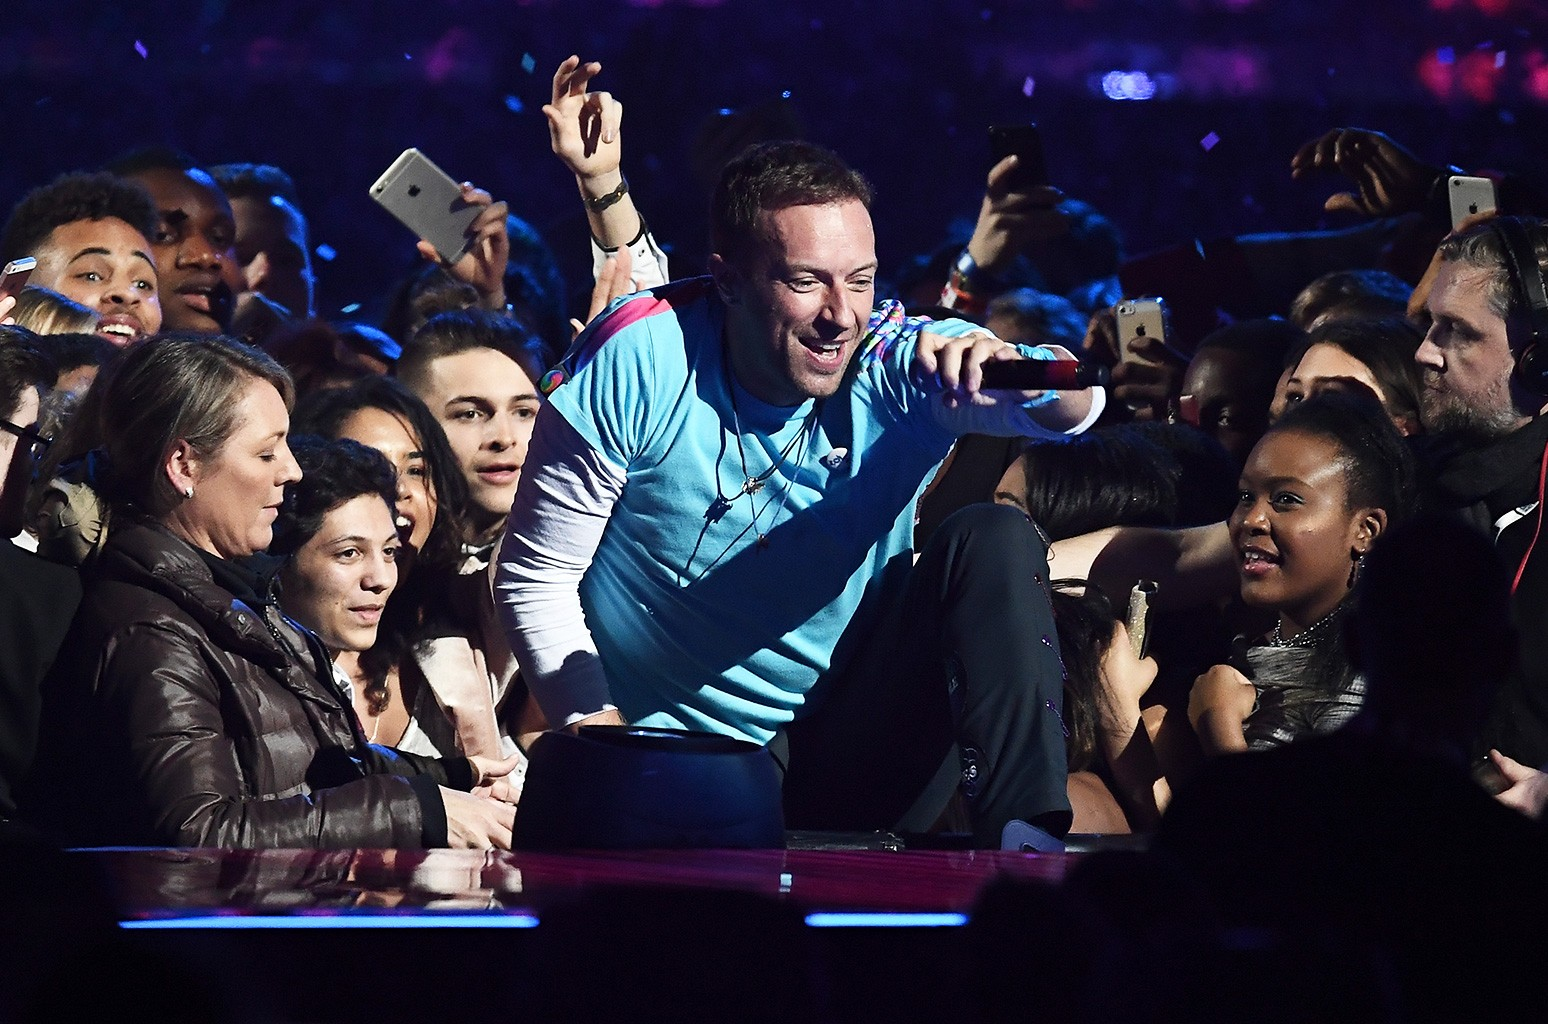 Chris Martin of Coldplay performs with The Chainsmokers on stage at The Brit Awards 2017 at The O2 Arena on Feb. 22, 2017 in London, England.